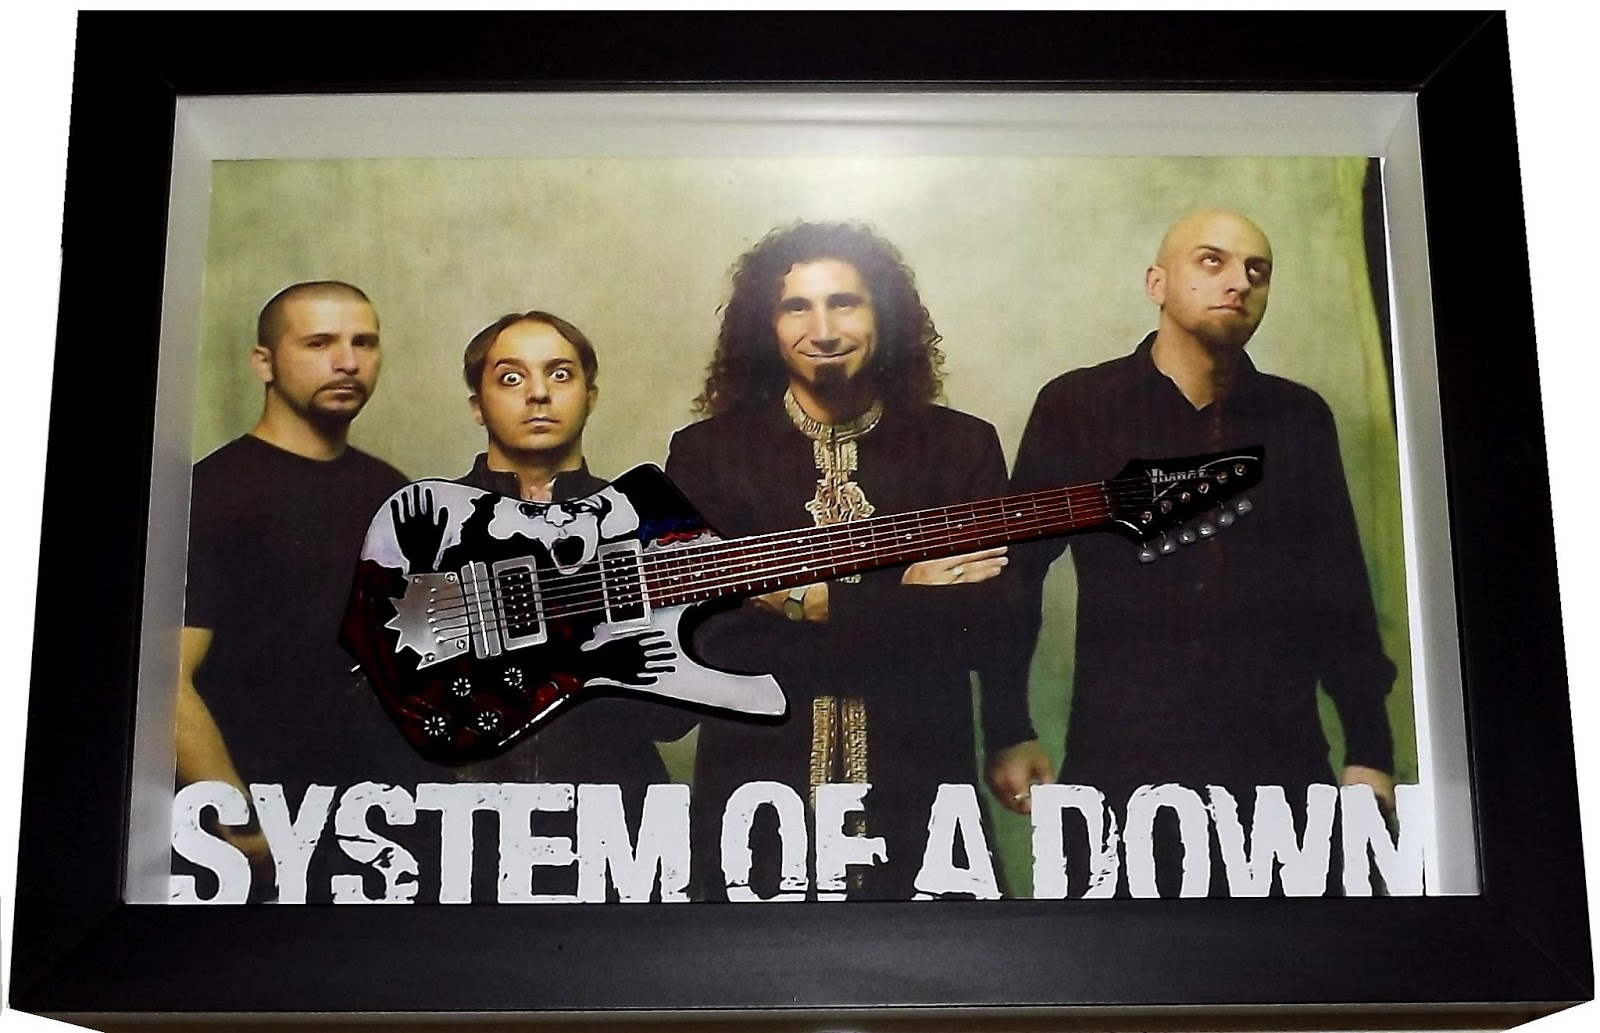 Systen of a Down - Quadro Guitarra Ibanez Daron Malakian Ice Man Signature